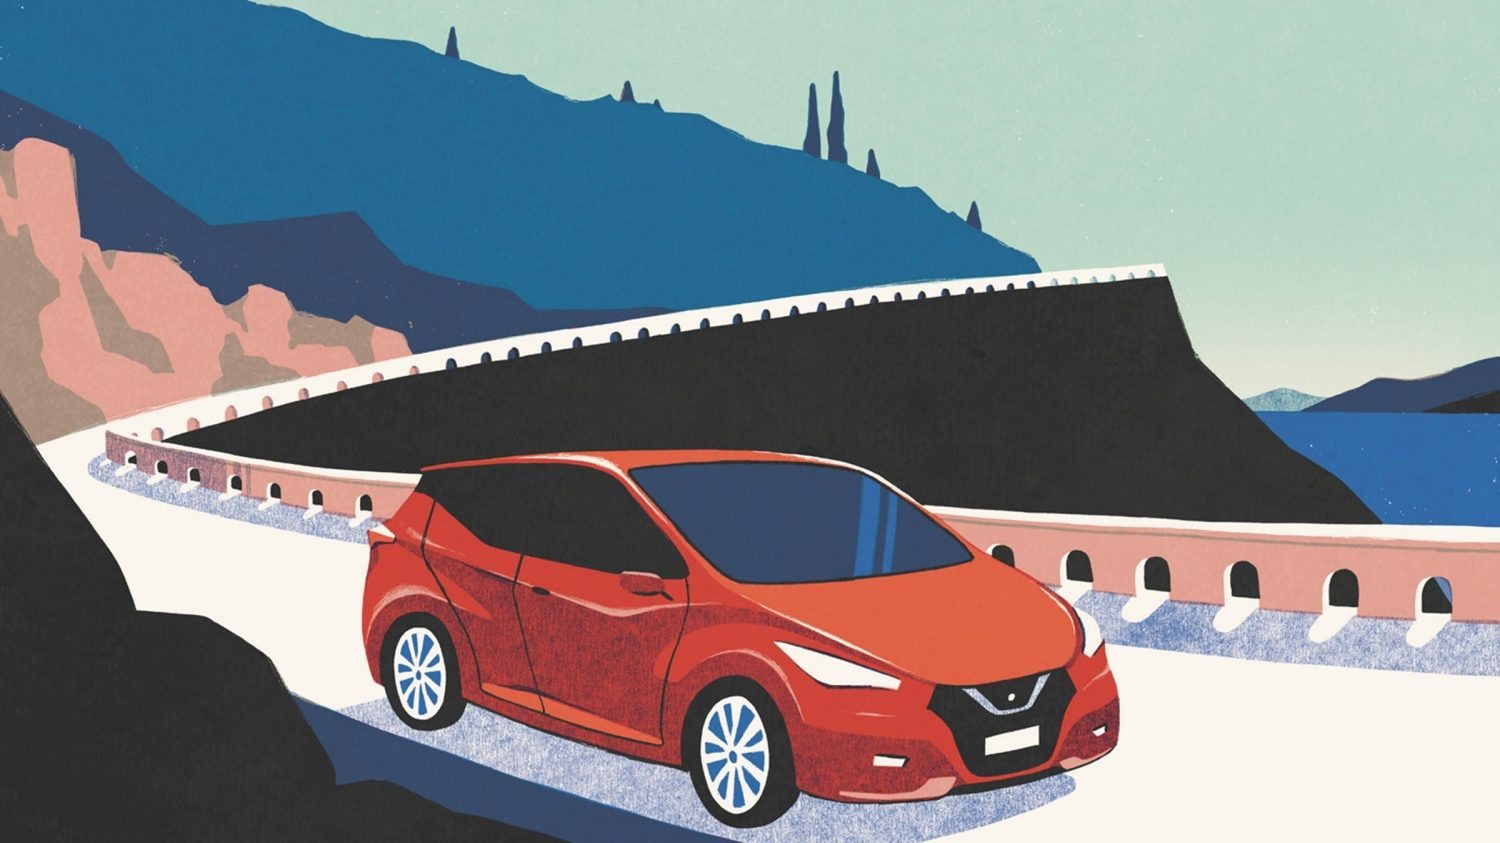 NISSAN MICRA Illustrationen von David Doran